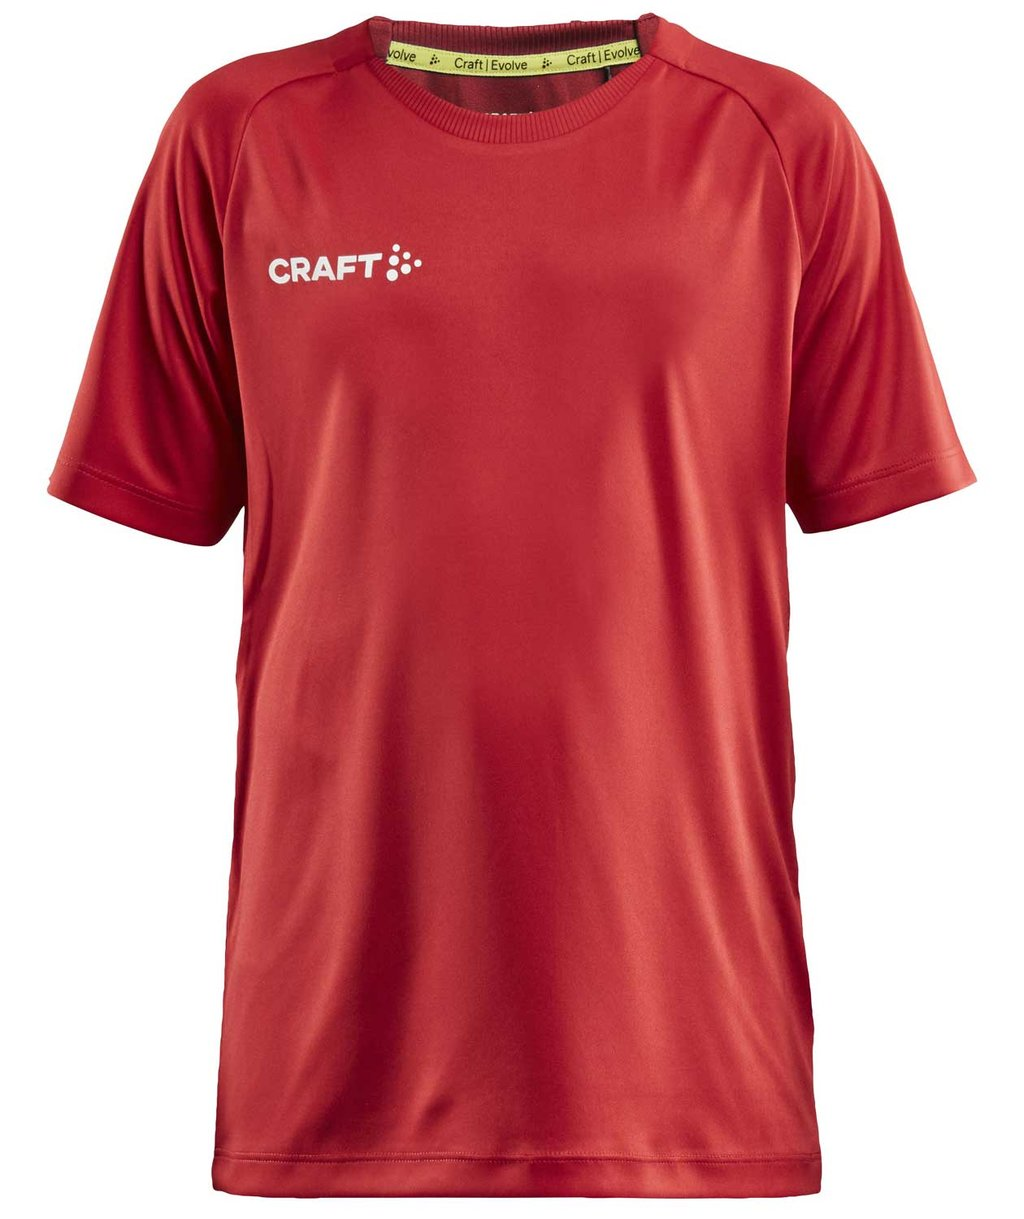 Craft Evolve T-Shirt für Kinder, Rot